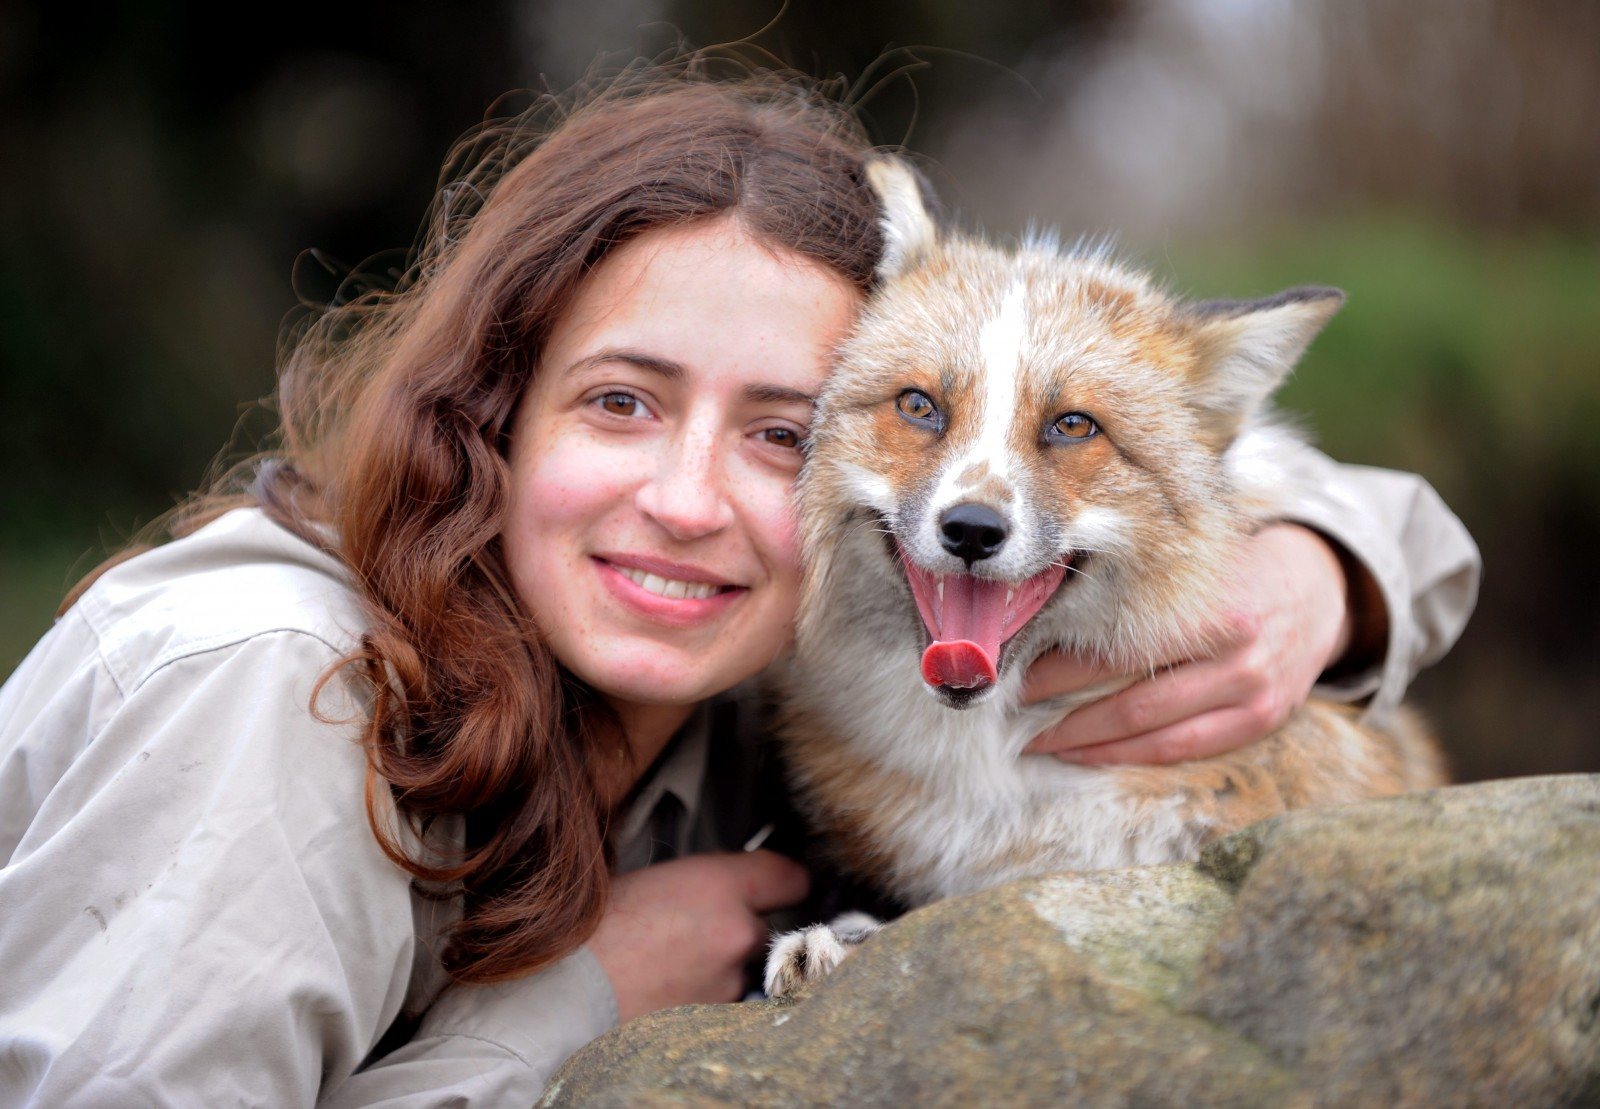 The fox who loves having his belly tickled and going for walks on a lead